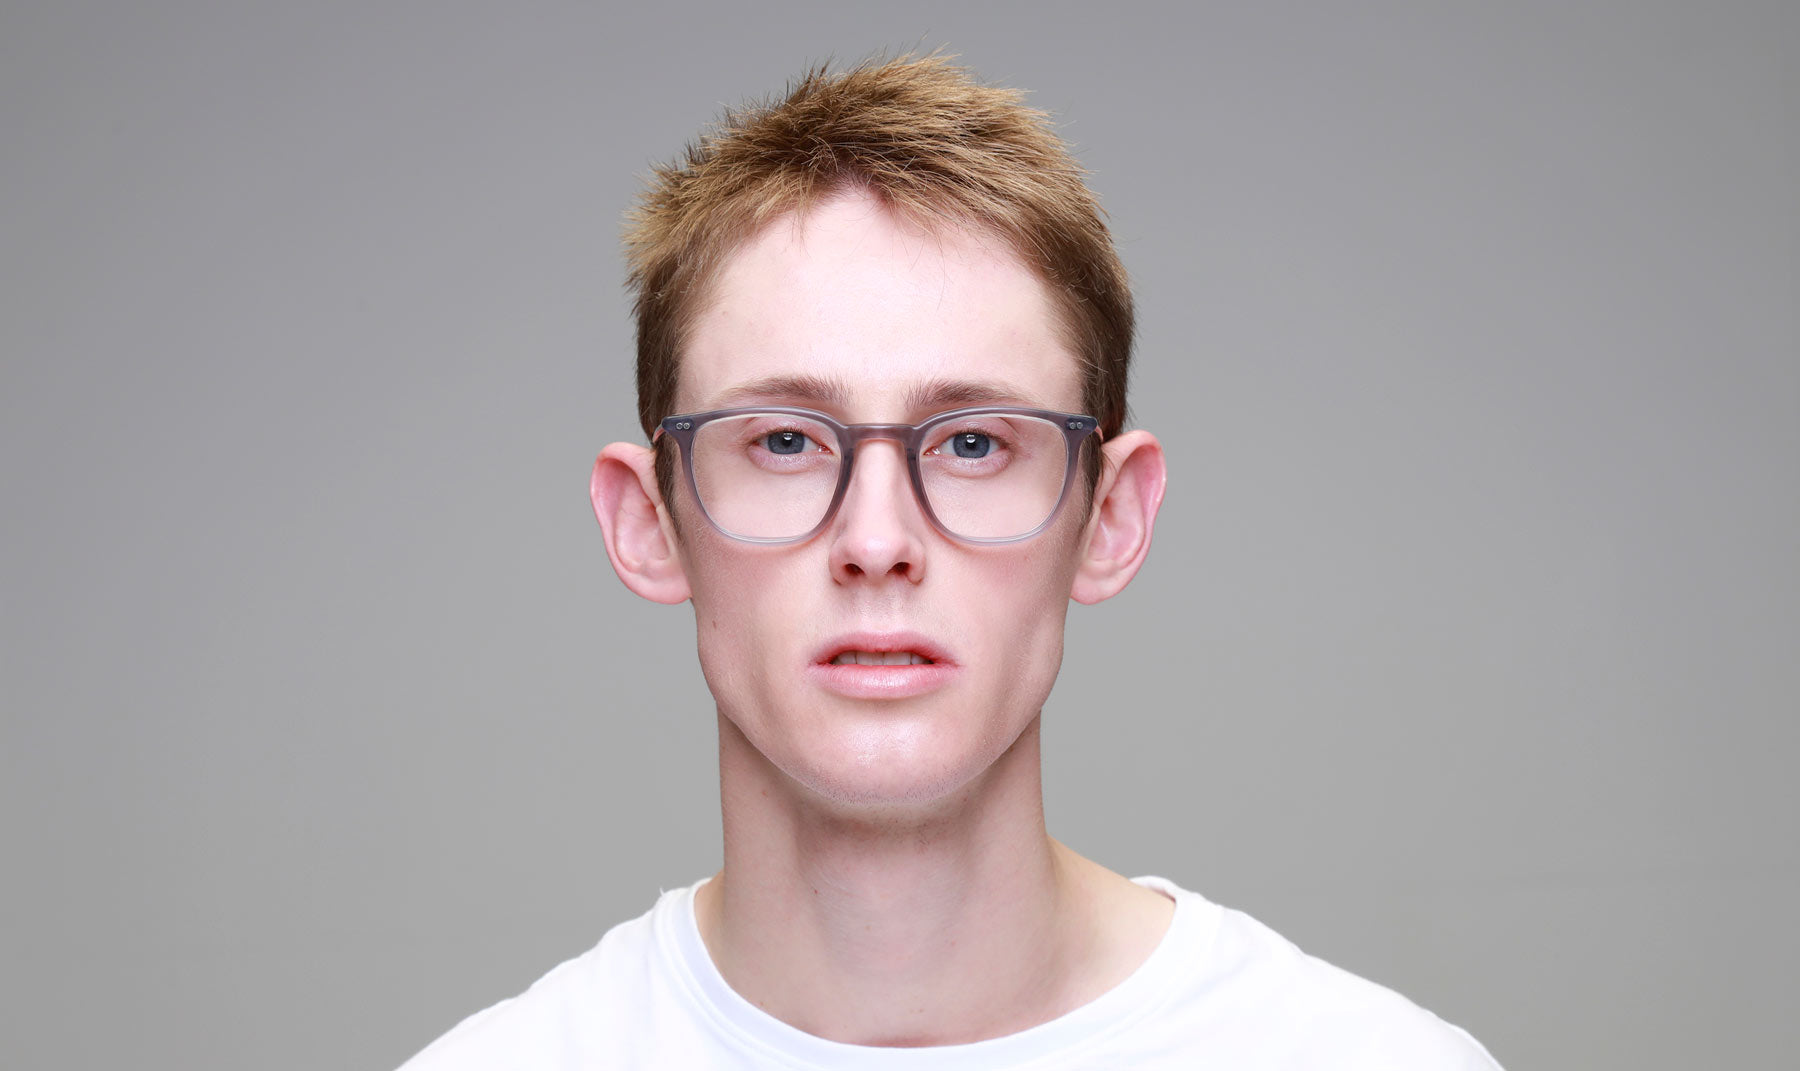 Man-Wearing-Rounded-Square-Grey-Glasses-Frame